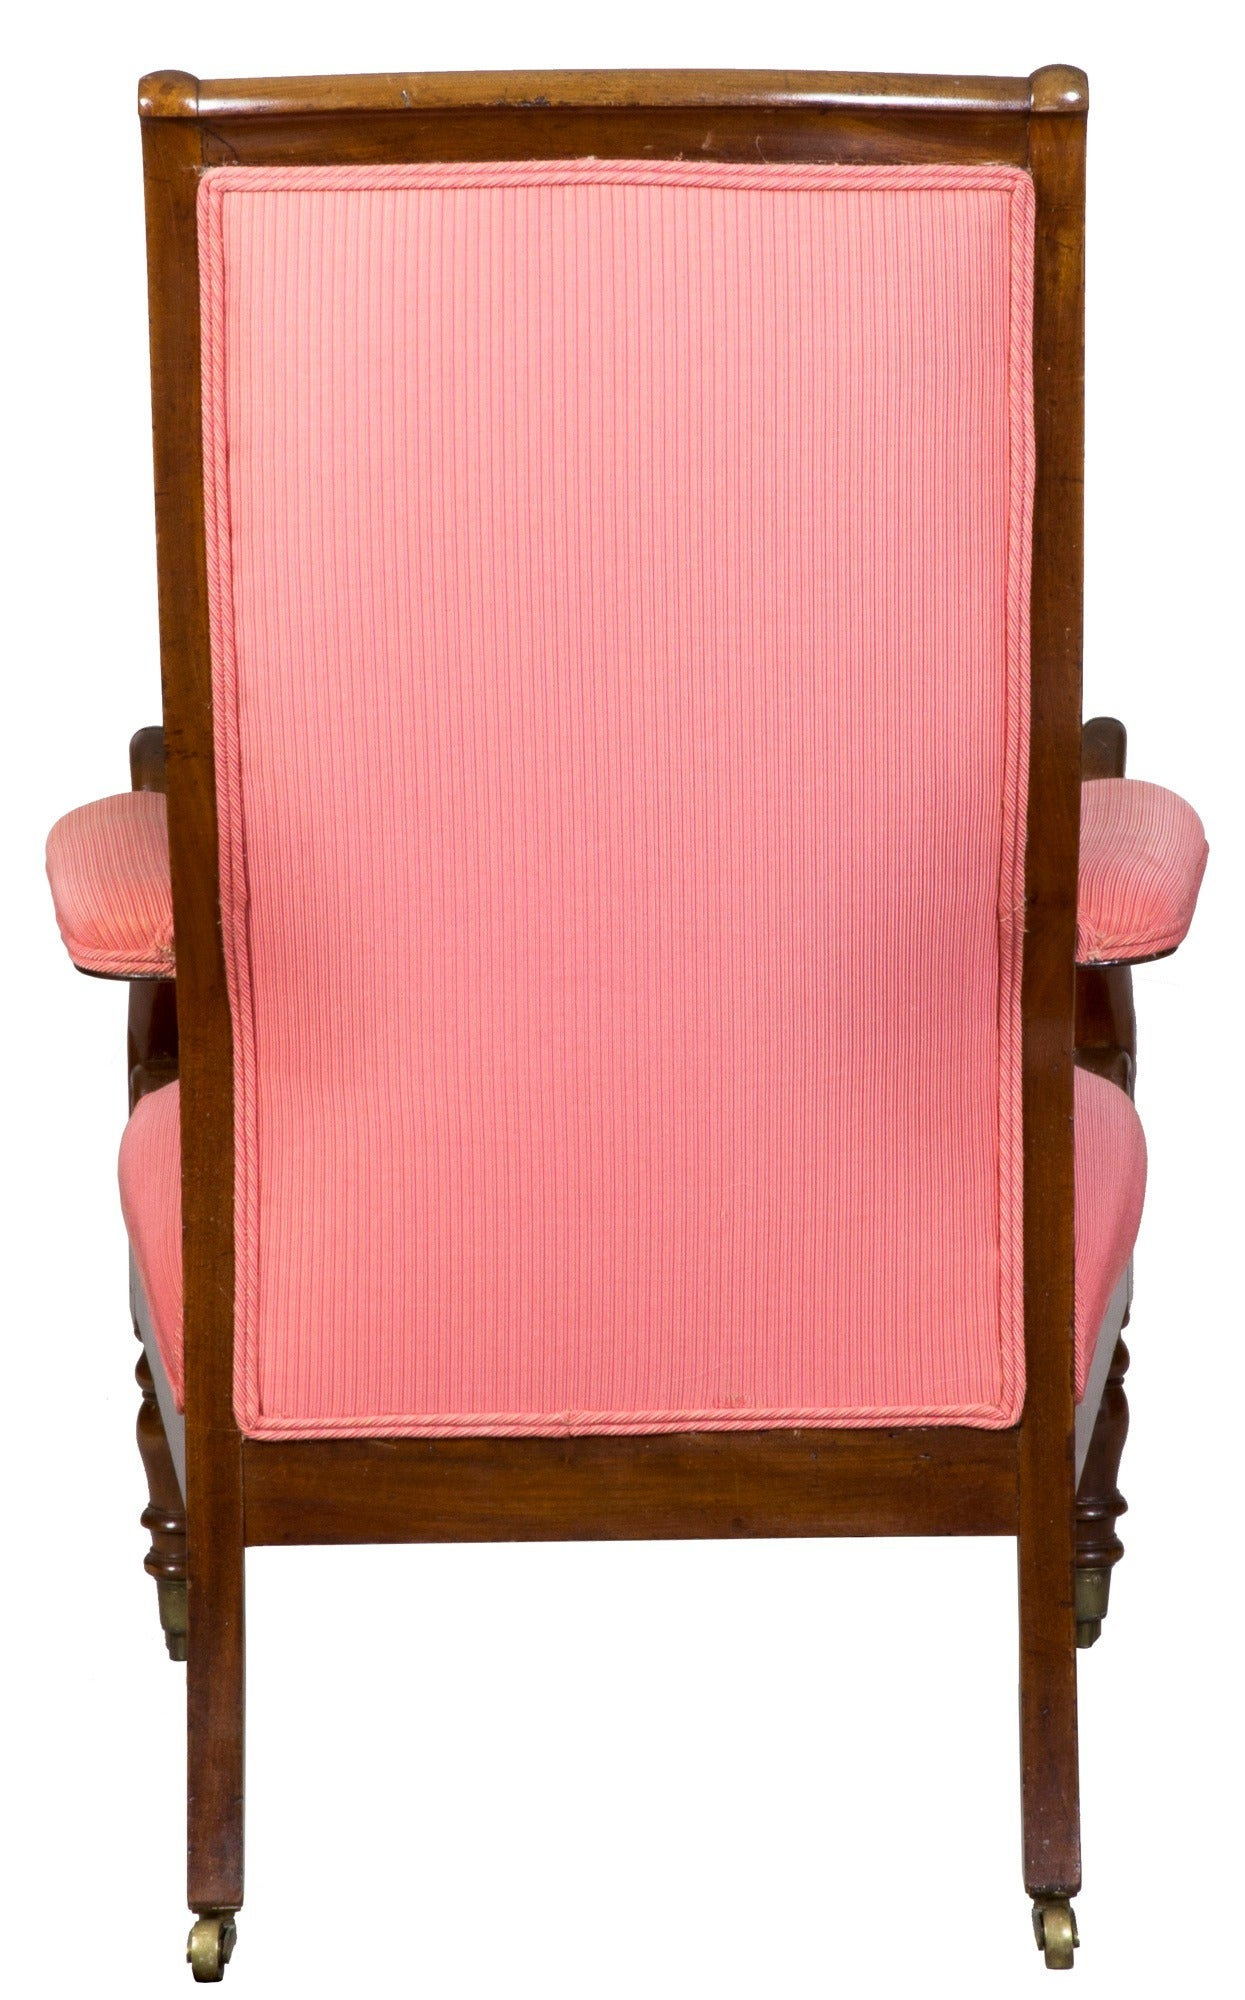 This israel sack american federal mahogany antique lolling arm chair - Mahogany Neoclassical Armchair Or Lolling Chair Attributed To Duncan Phyfe 3